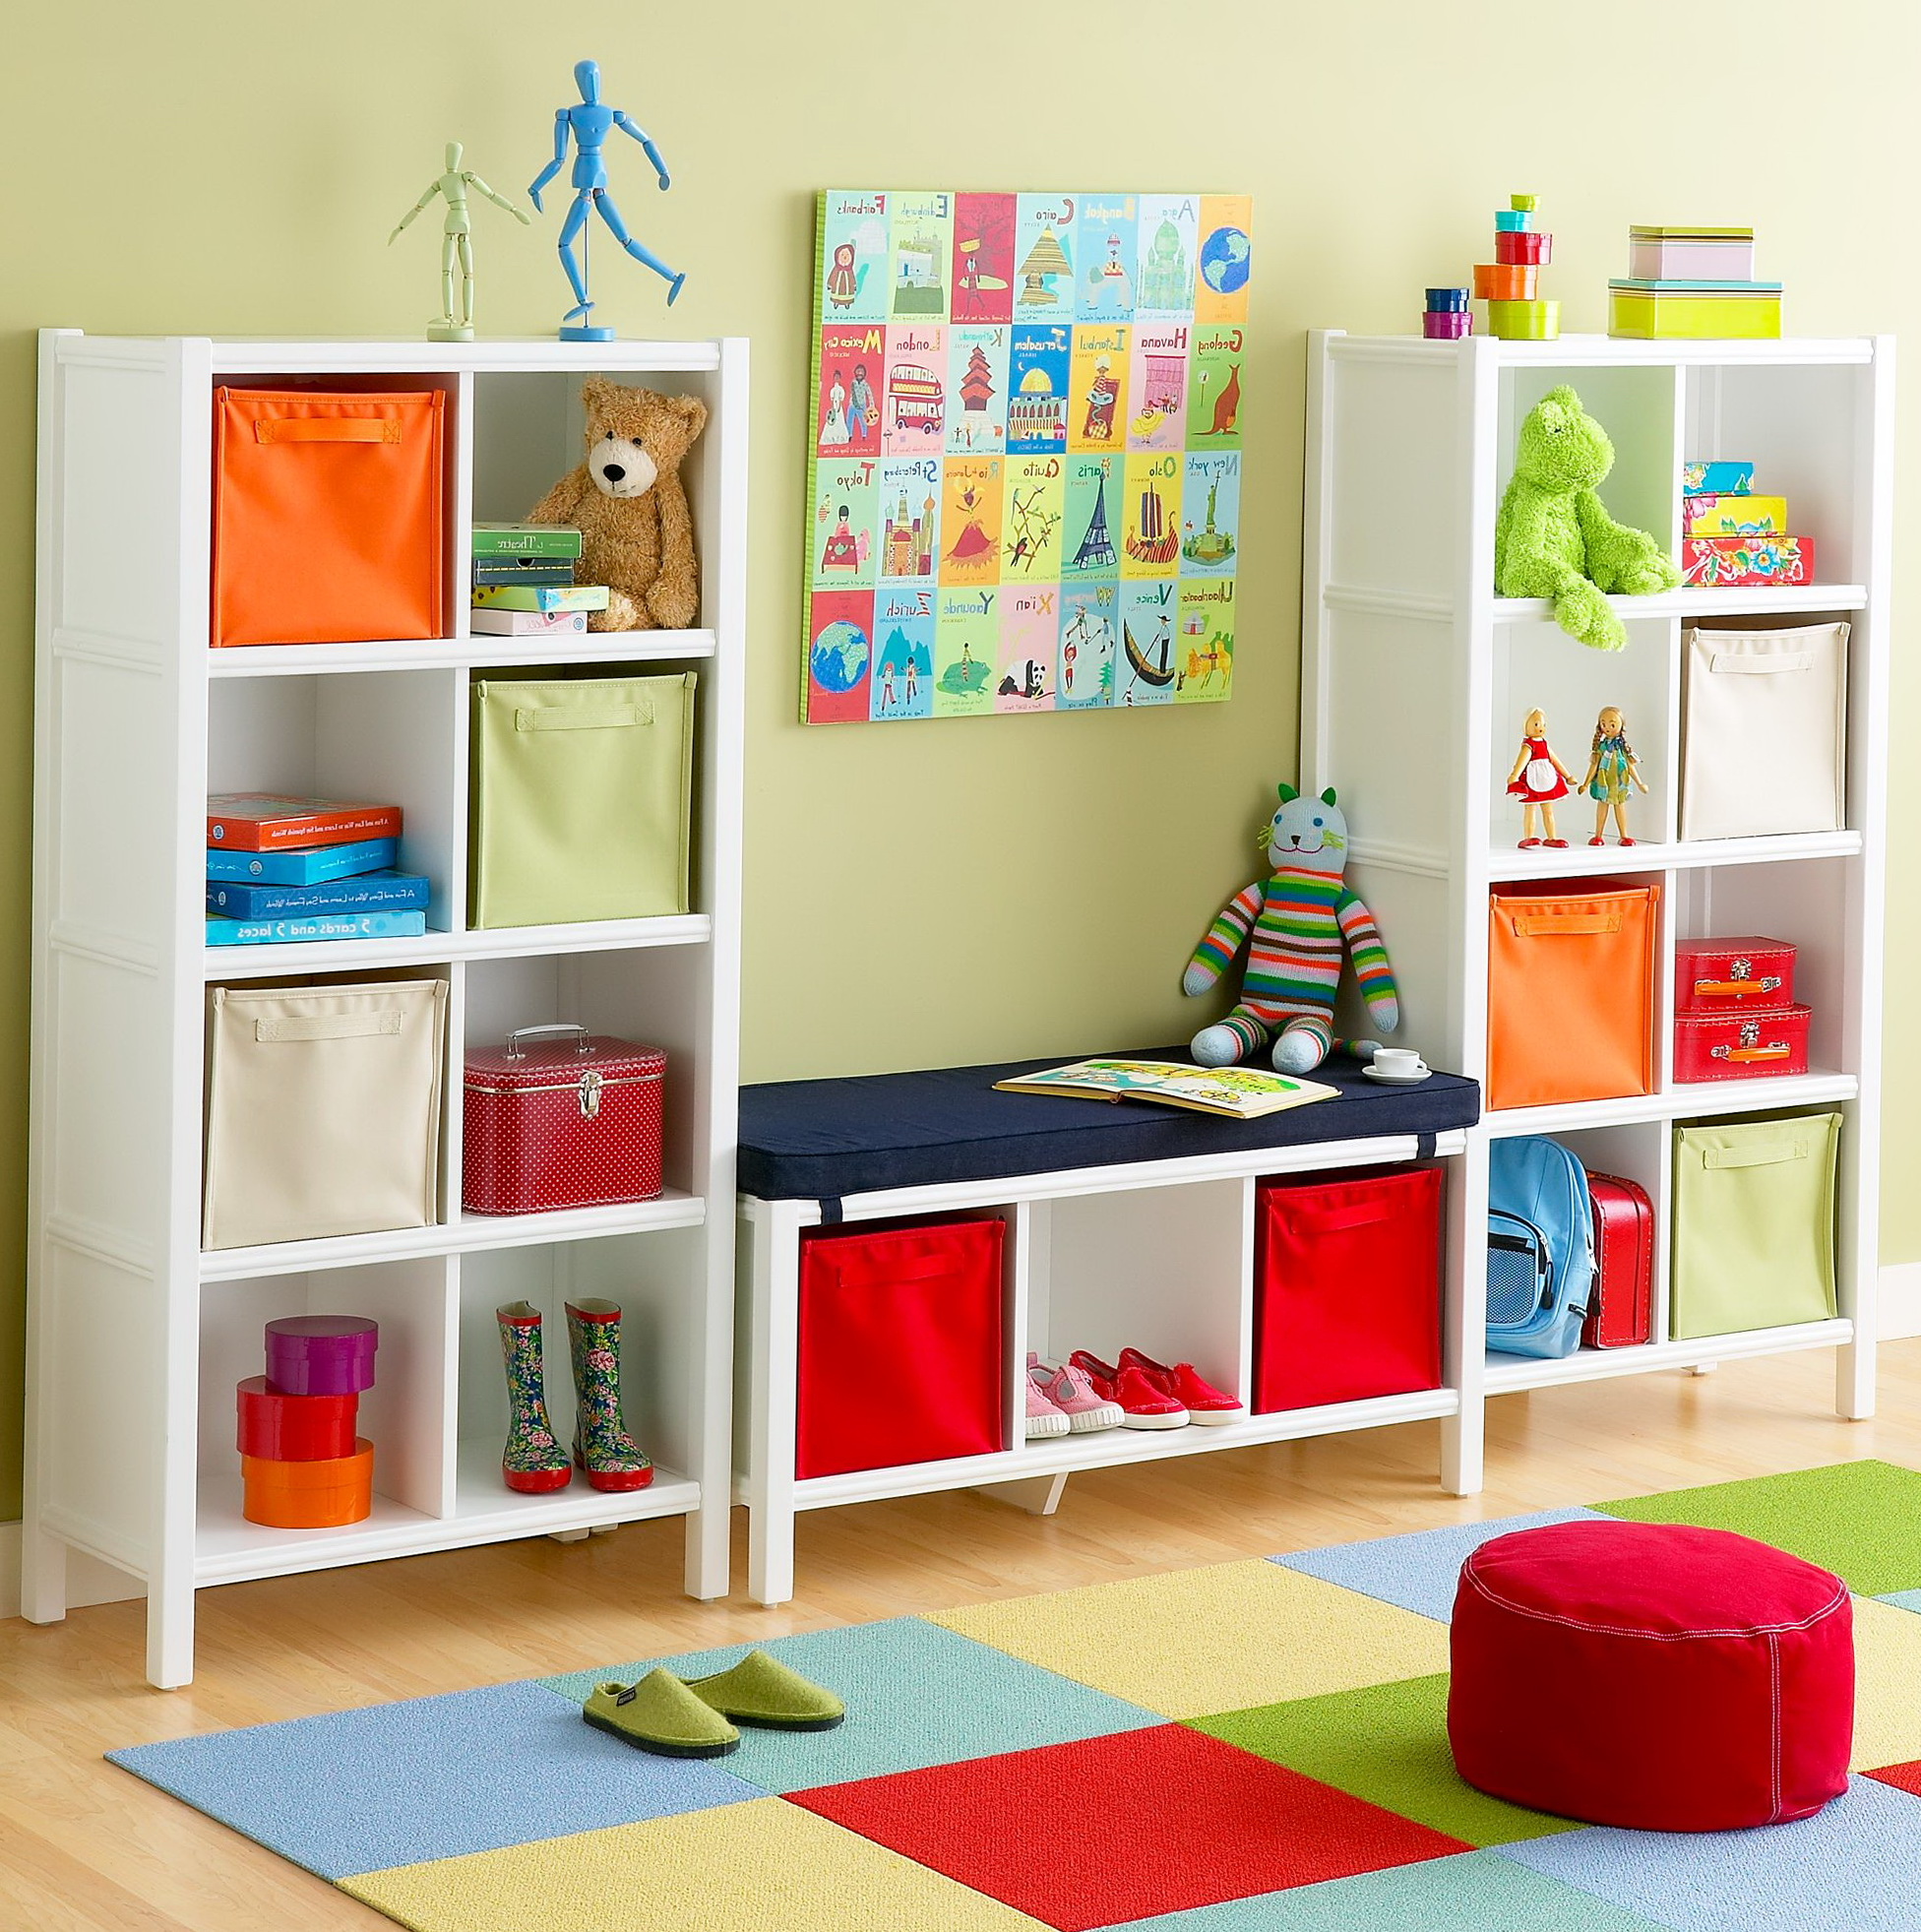 Permalink to Bookshelf For Kids Room